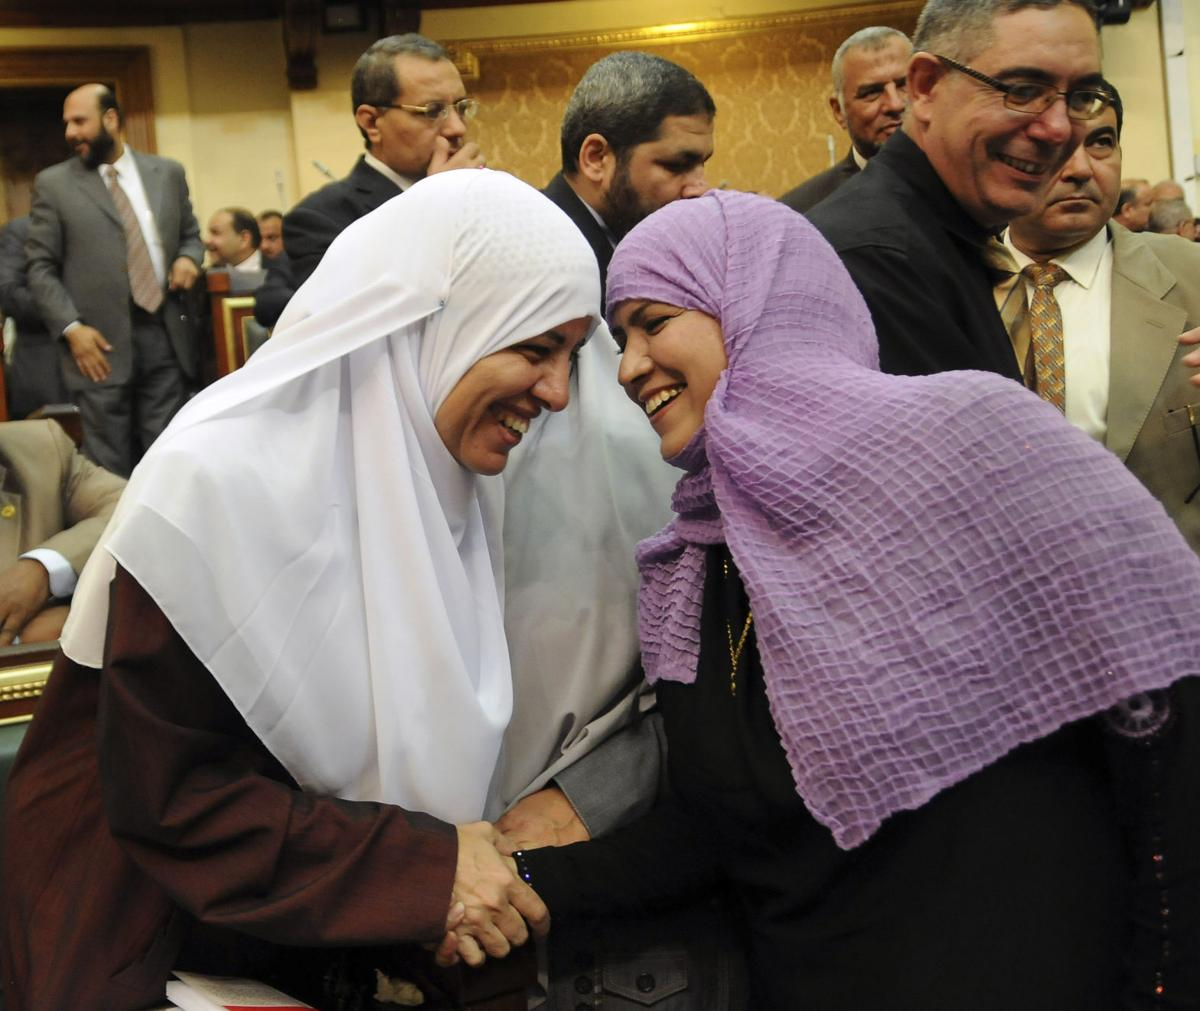 Egyptian session defies ban